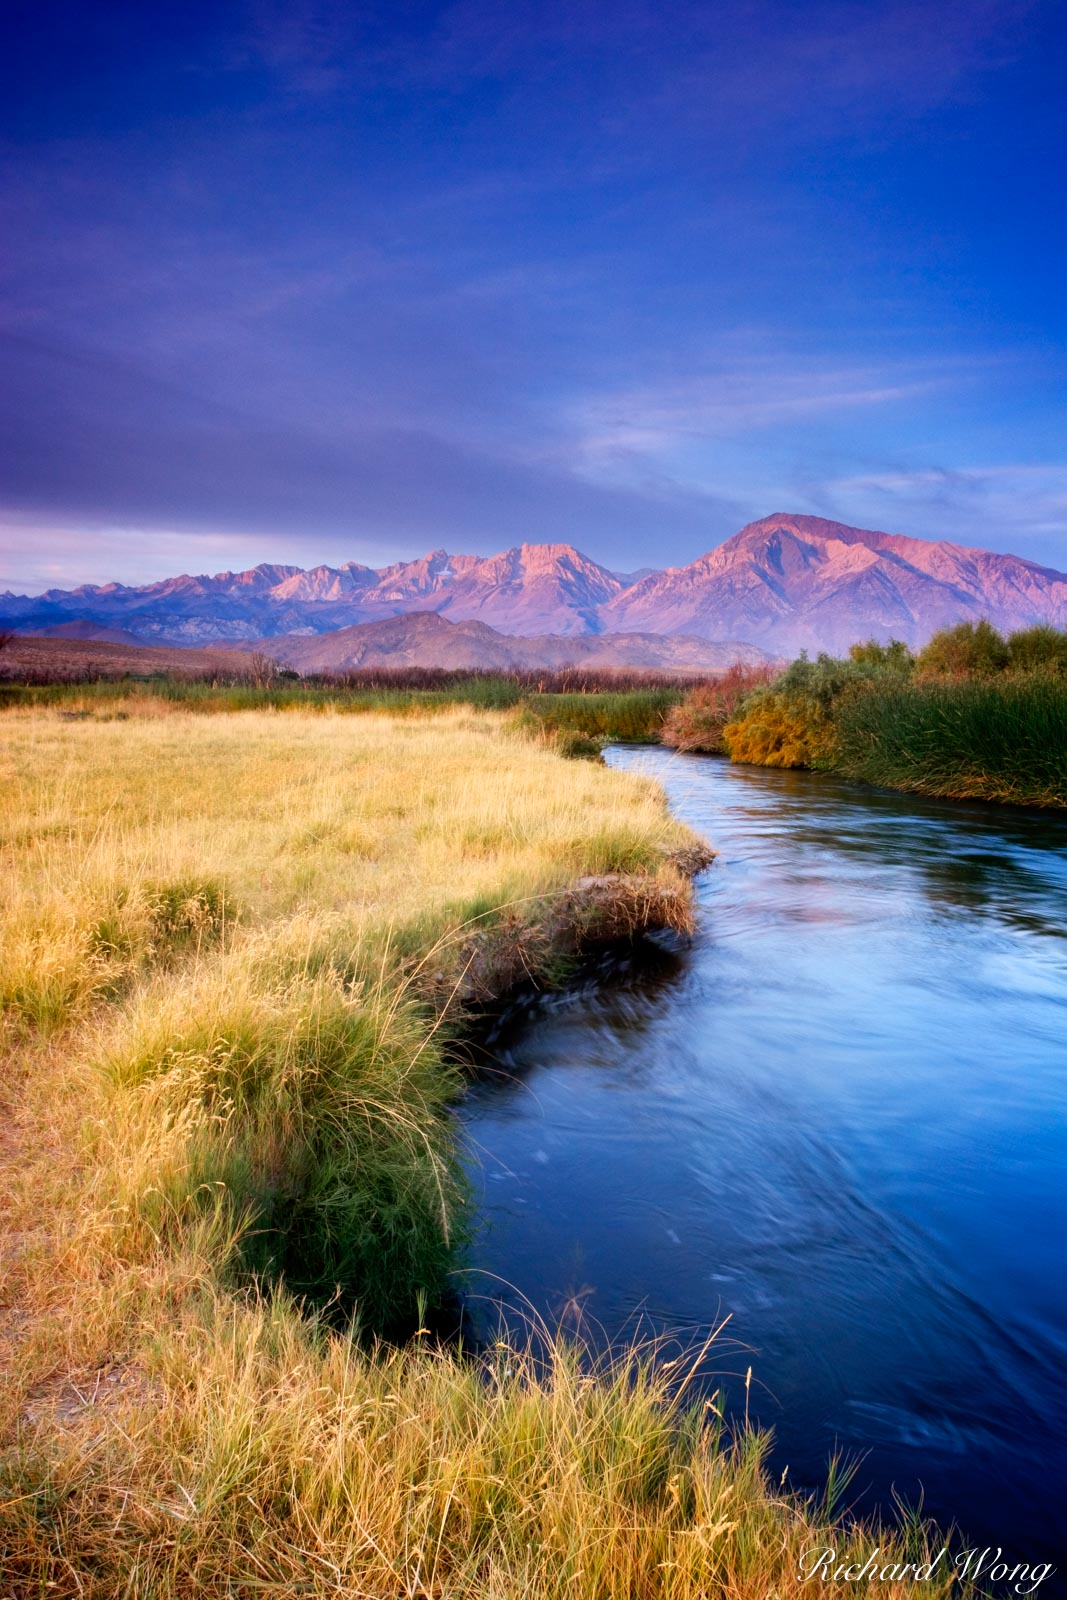 Owens River Sunrise, Owens Valley, California, photo, photo